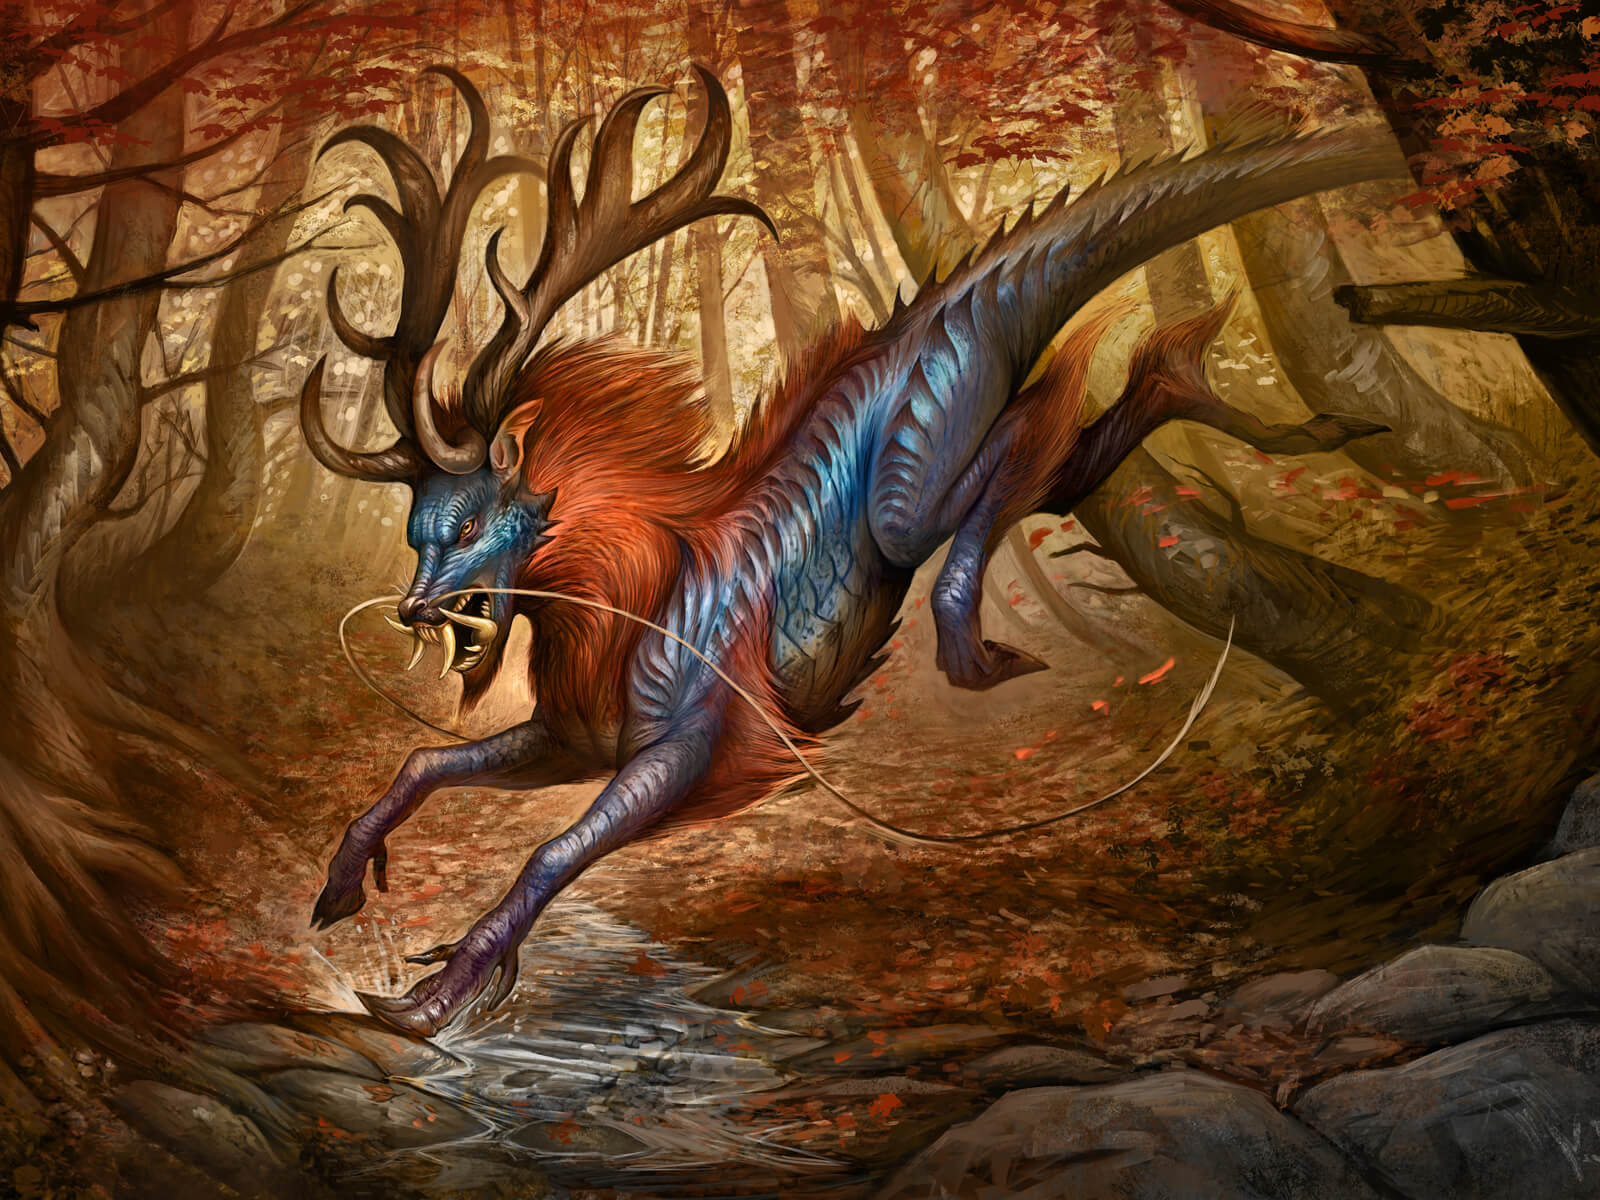 digital painting of a creature with lizard-like skin, a lion's mane, and giant antlers, running through an autumnal forest